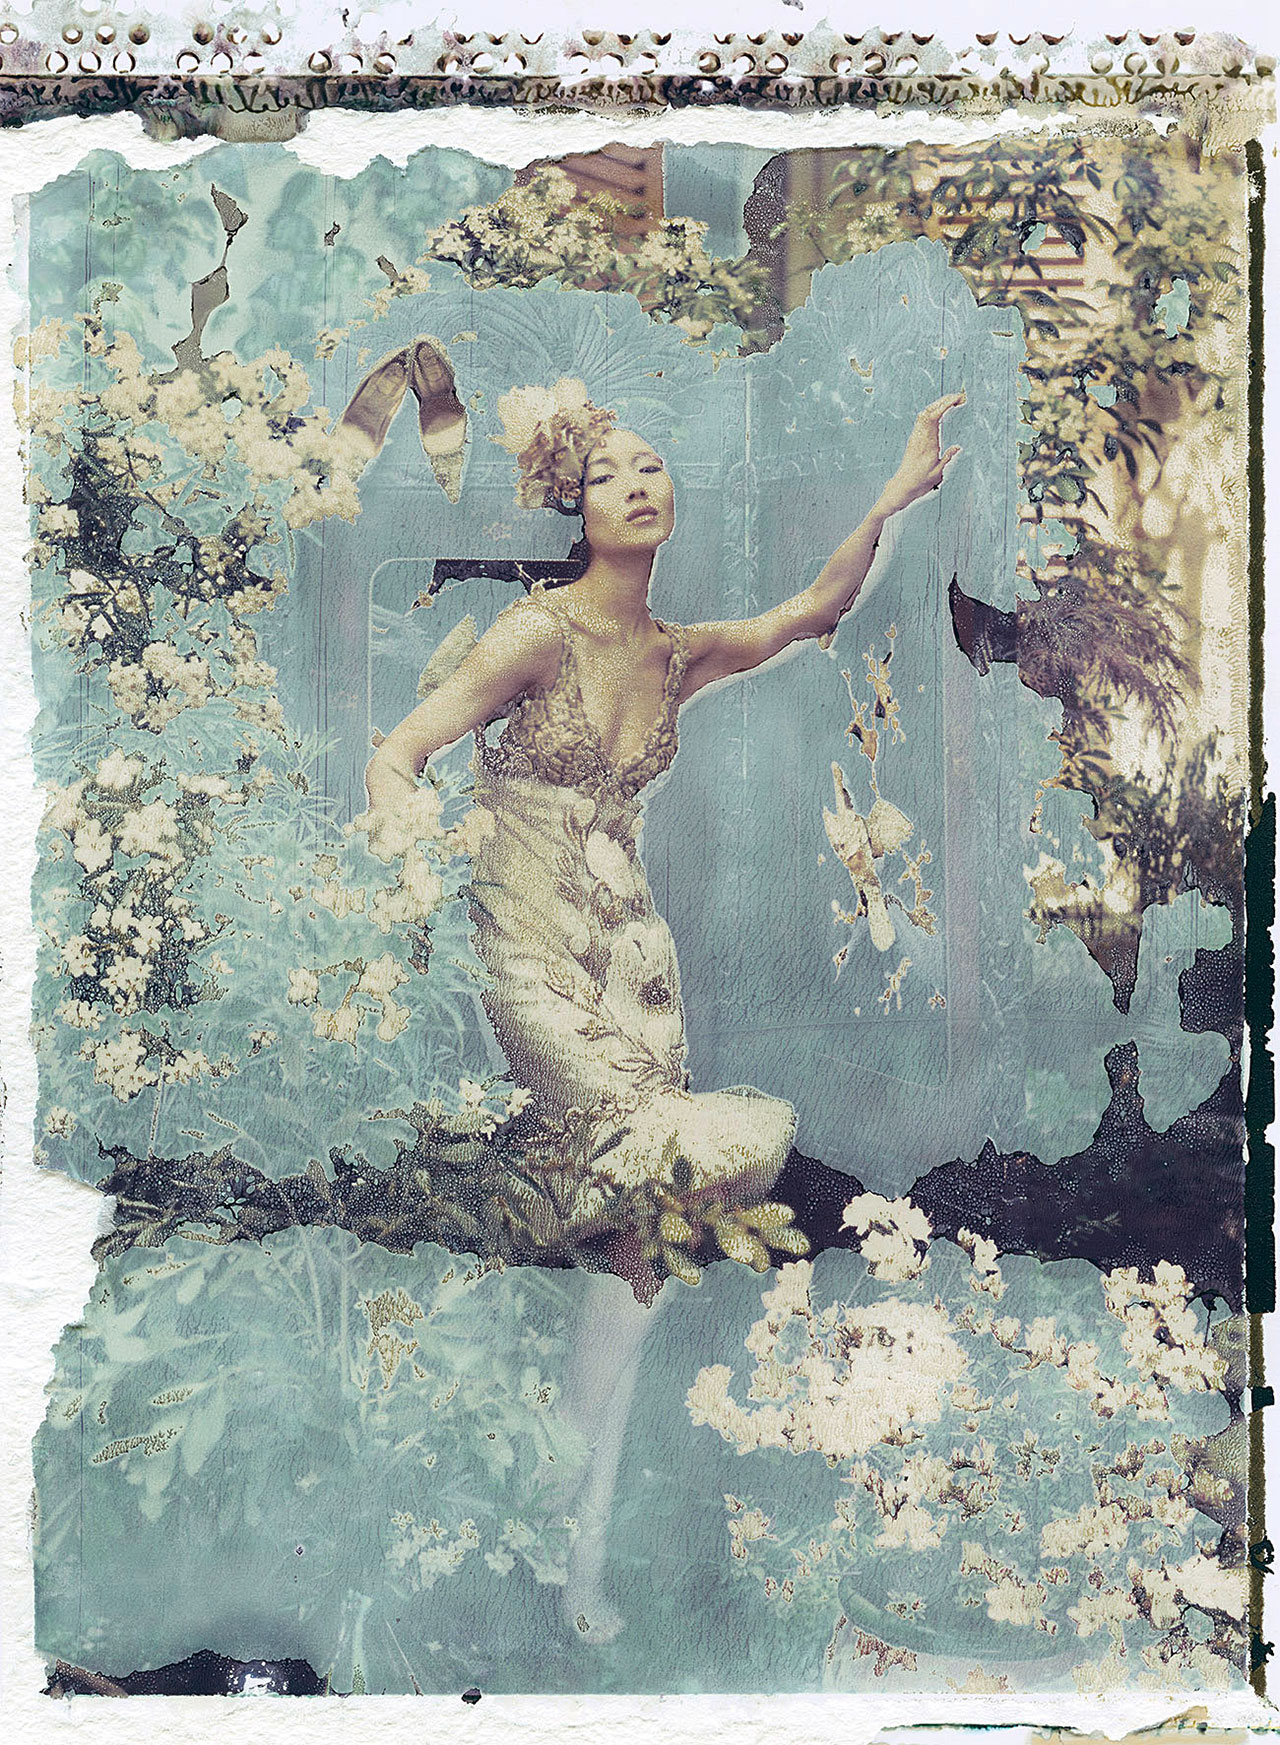 """Cathleen Naundorf """"An Ordinary day"""" ValentinoHaute Couture summer 2008- n°20, Color-print from original polaroid, 2008."""